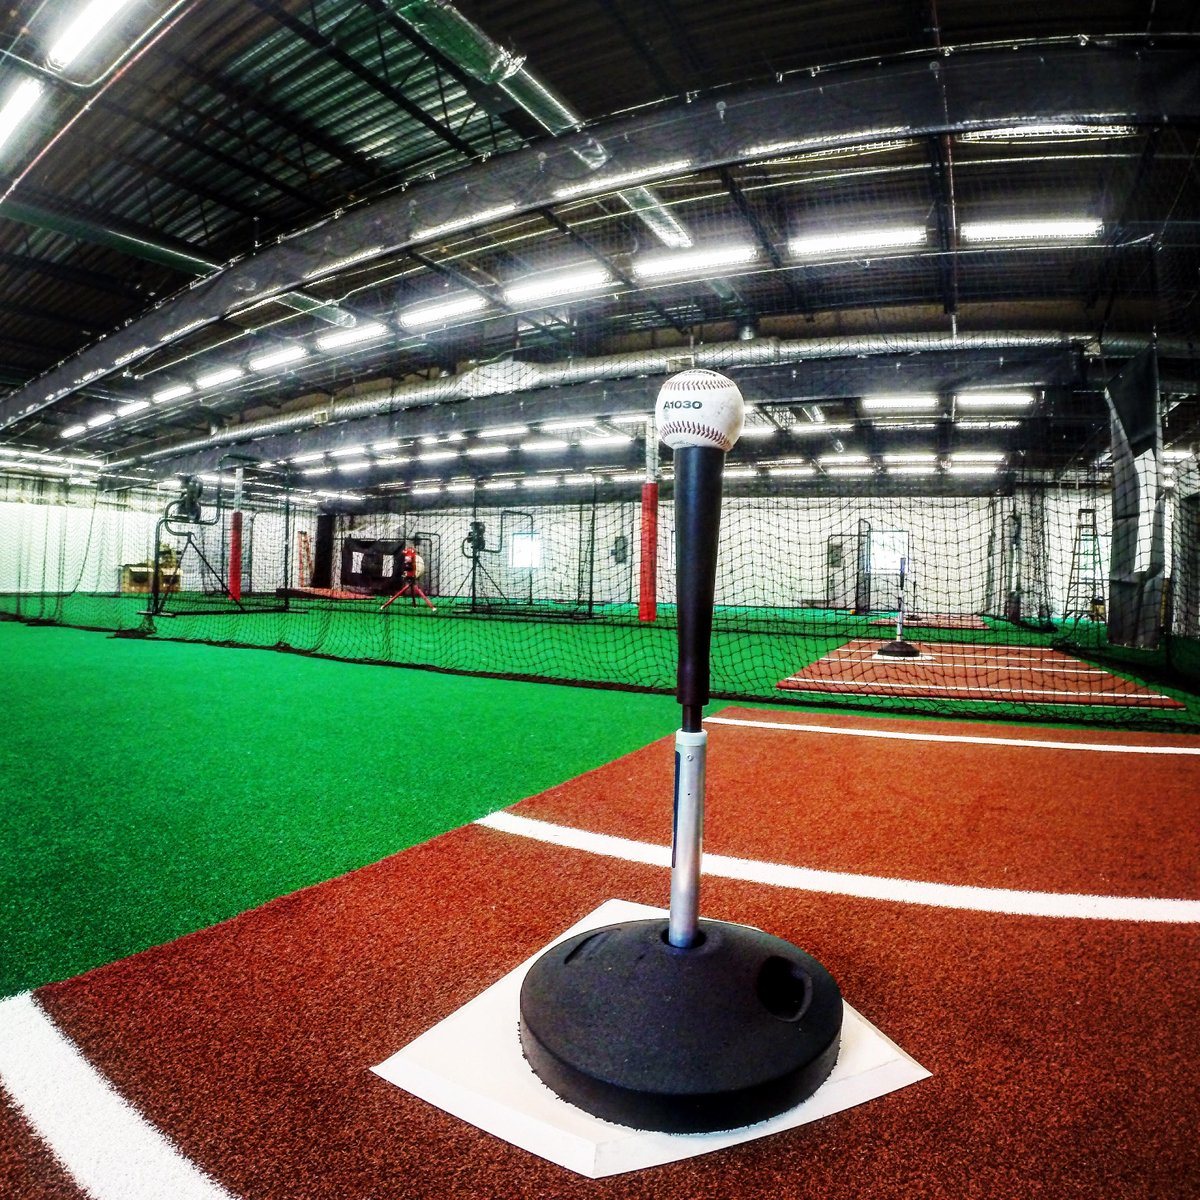 BASEBALL AND SOFTBALL CAGES